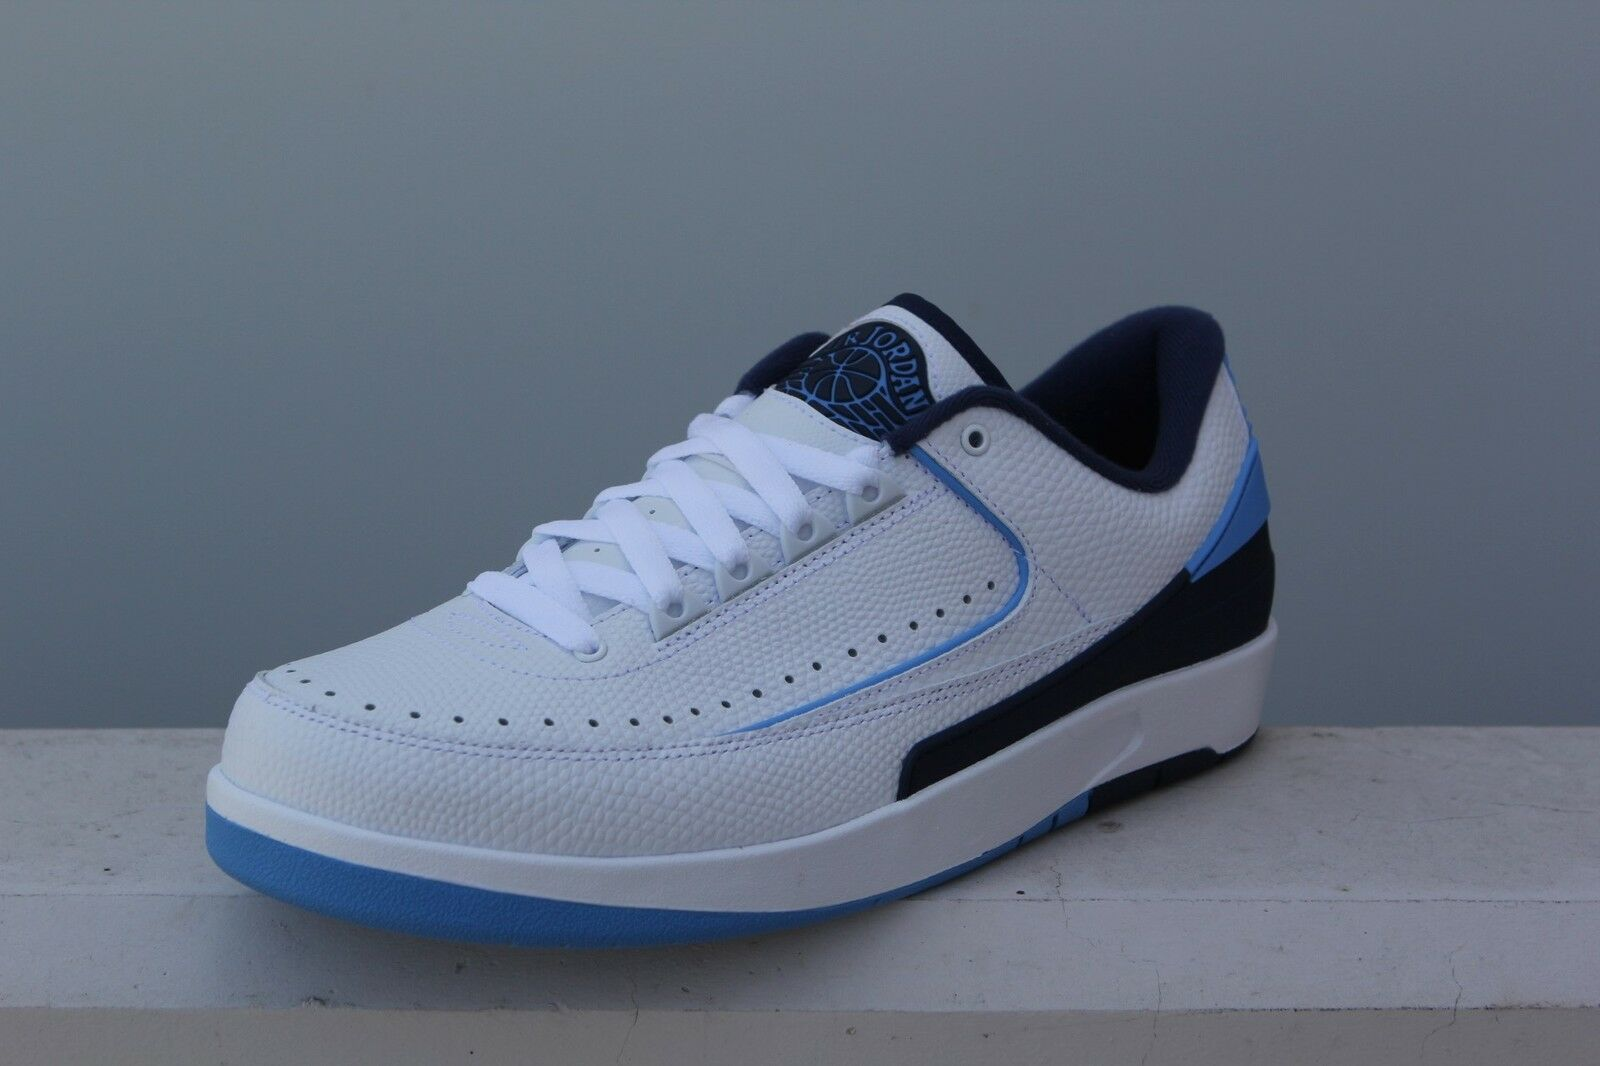 832819-107 Jordan Men Air Jordan 2 Retro Low Midnight Navy  university Blau midn